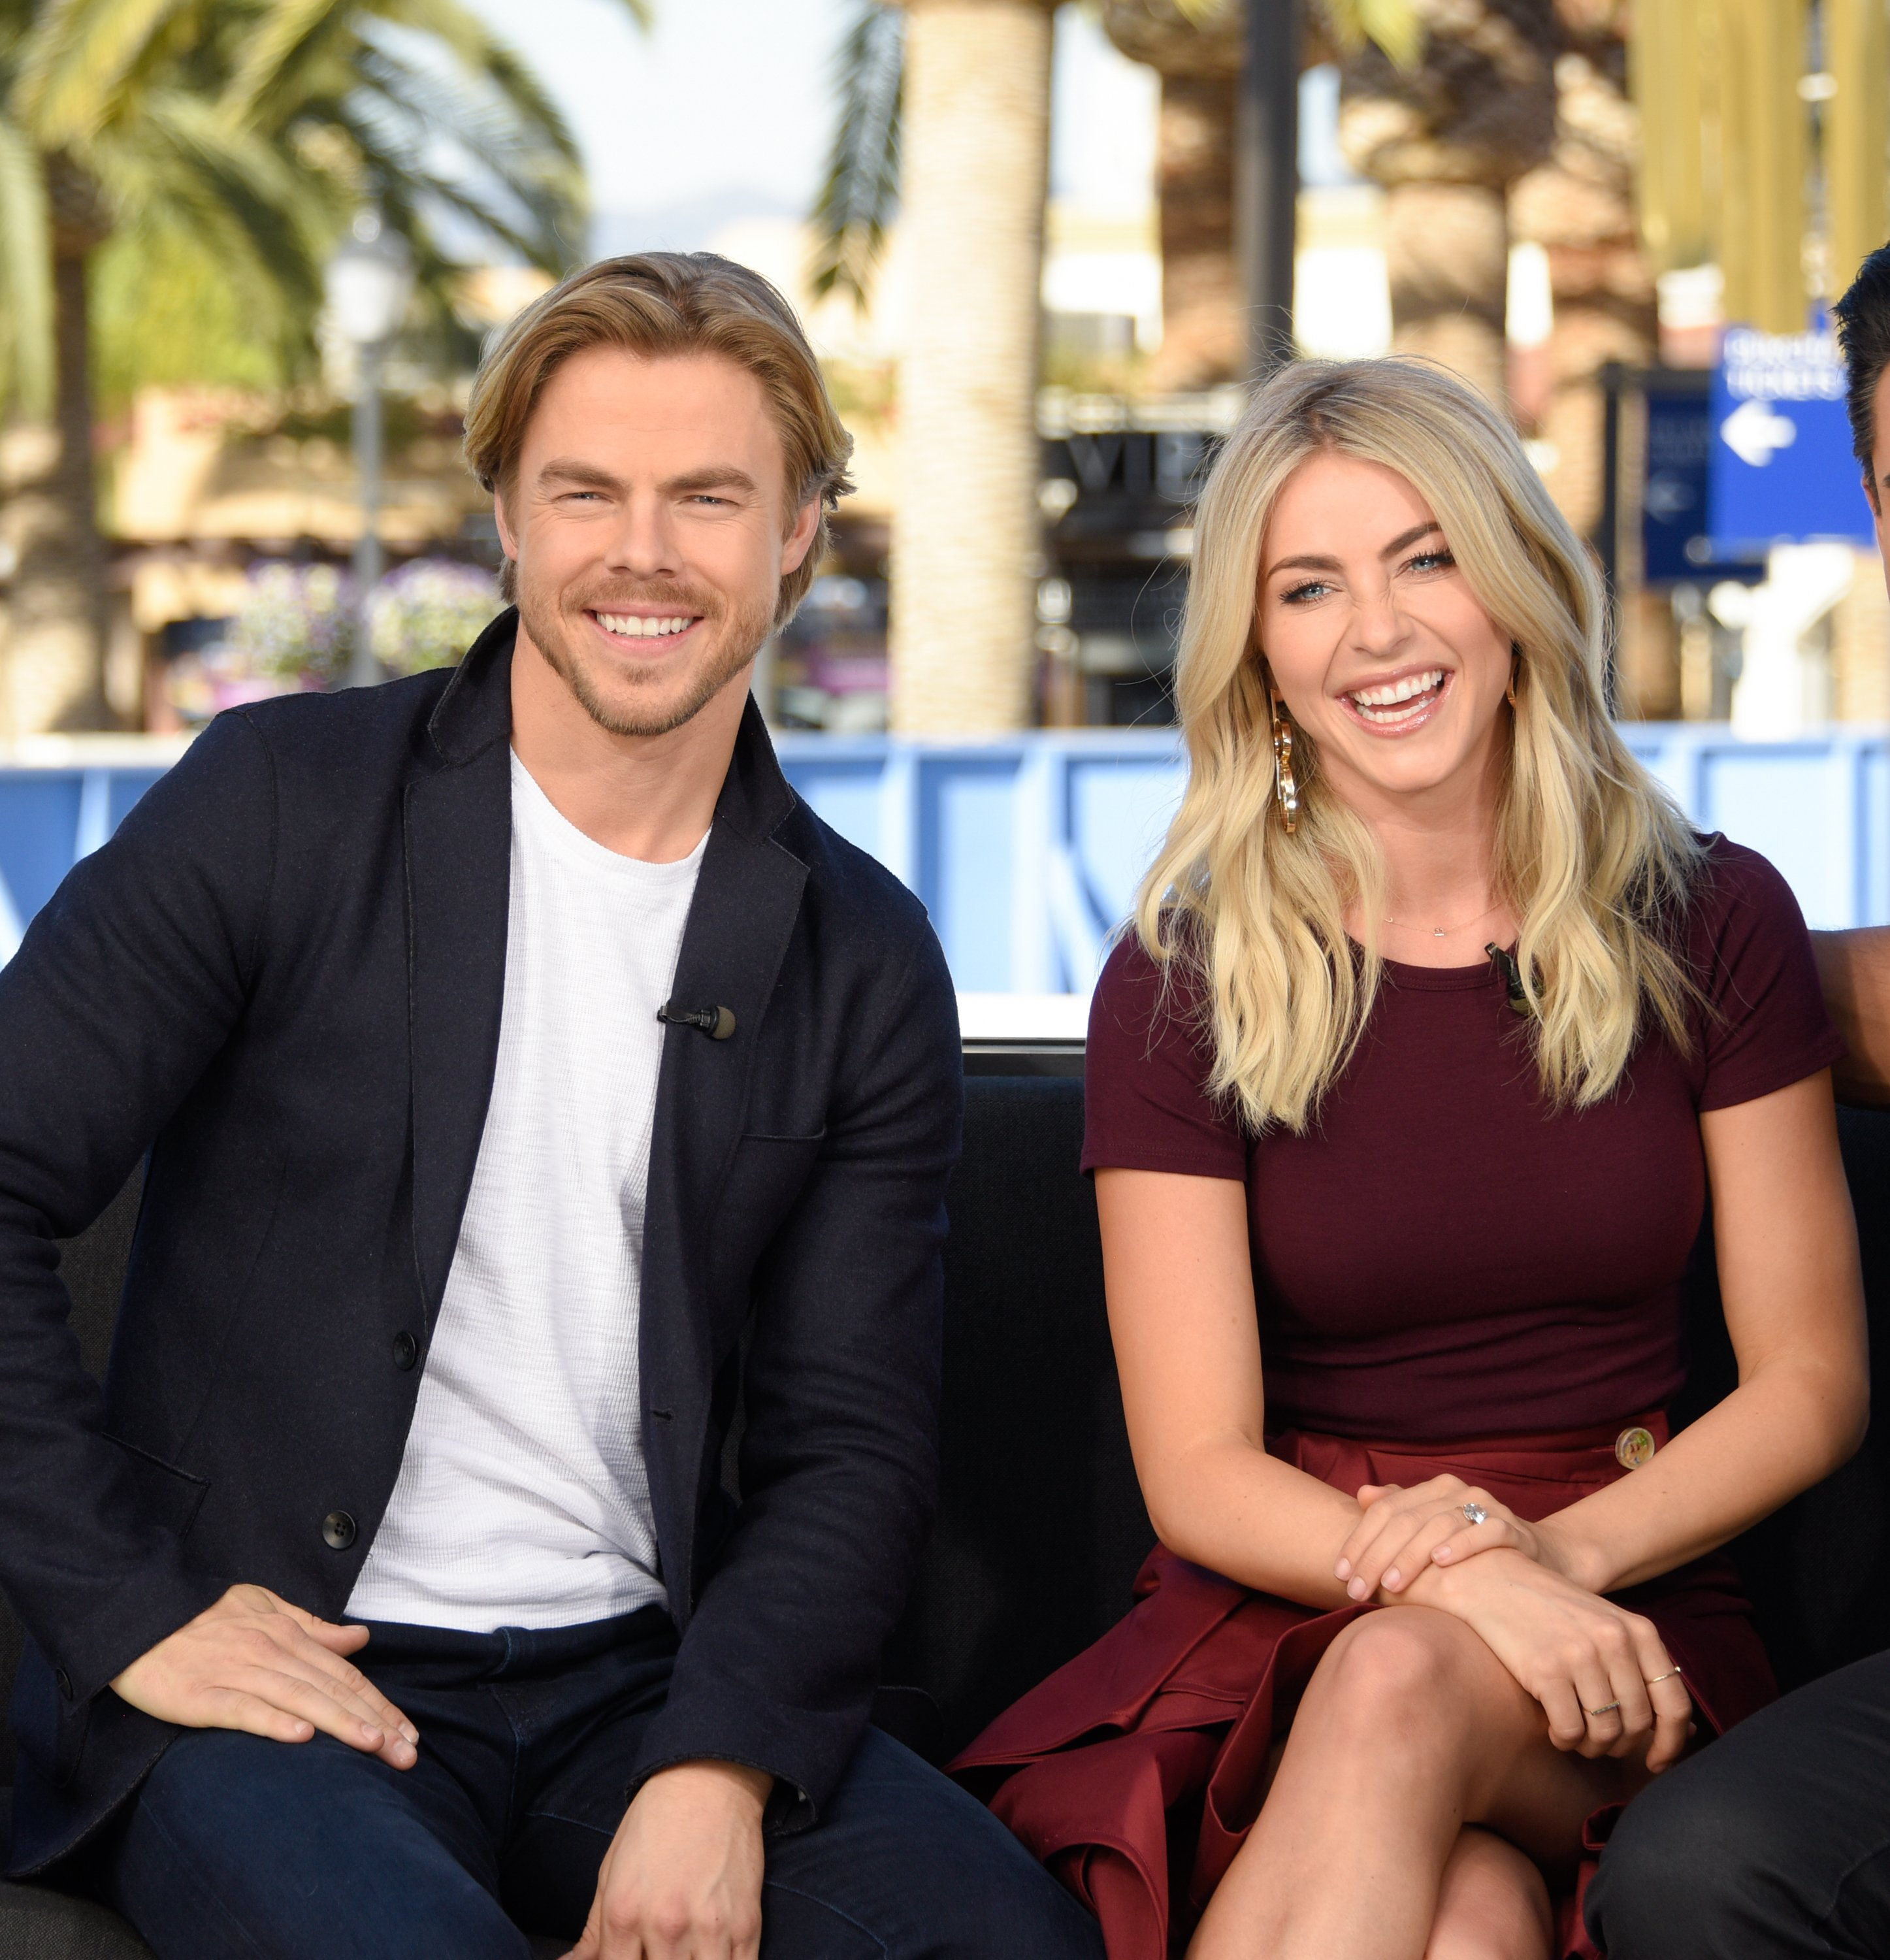 """Derek Hough and Julianne Hough visit """"Extra"""" at Universal Studios Hollywood on March 7, 2017. 